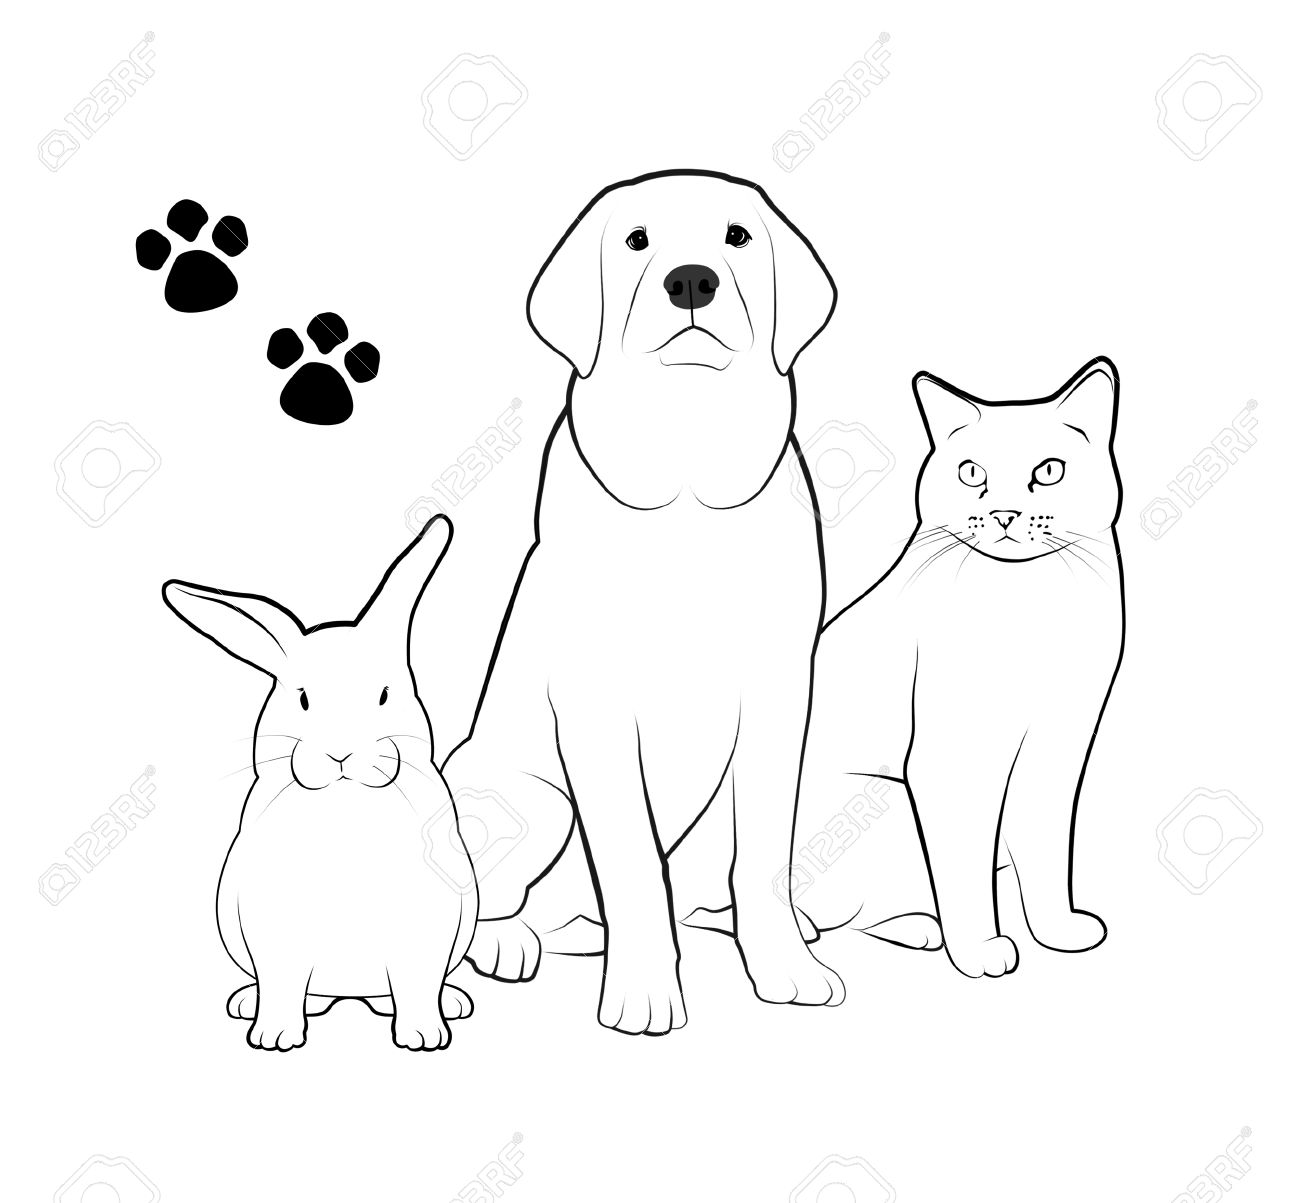 Line drawings of dog, cat, and rabbit. - 71819612